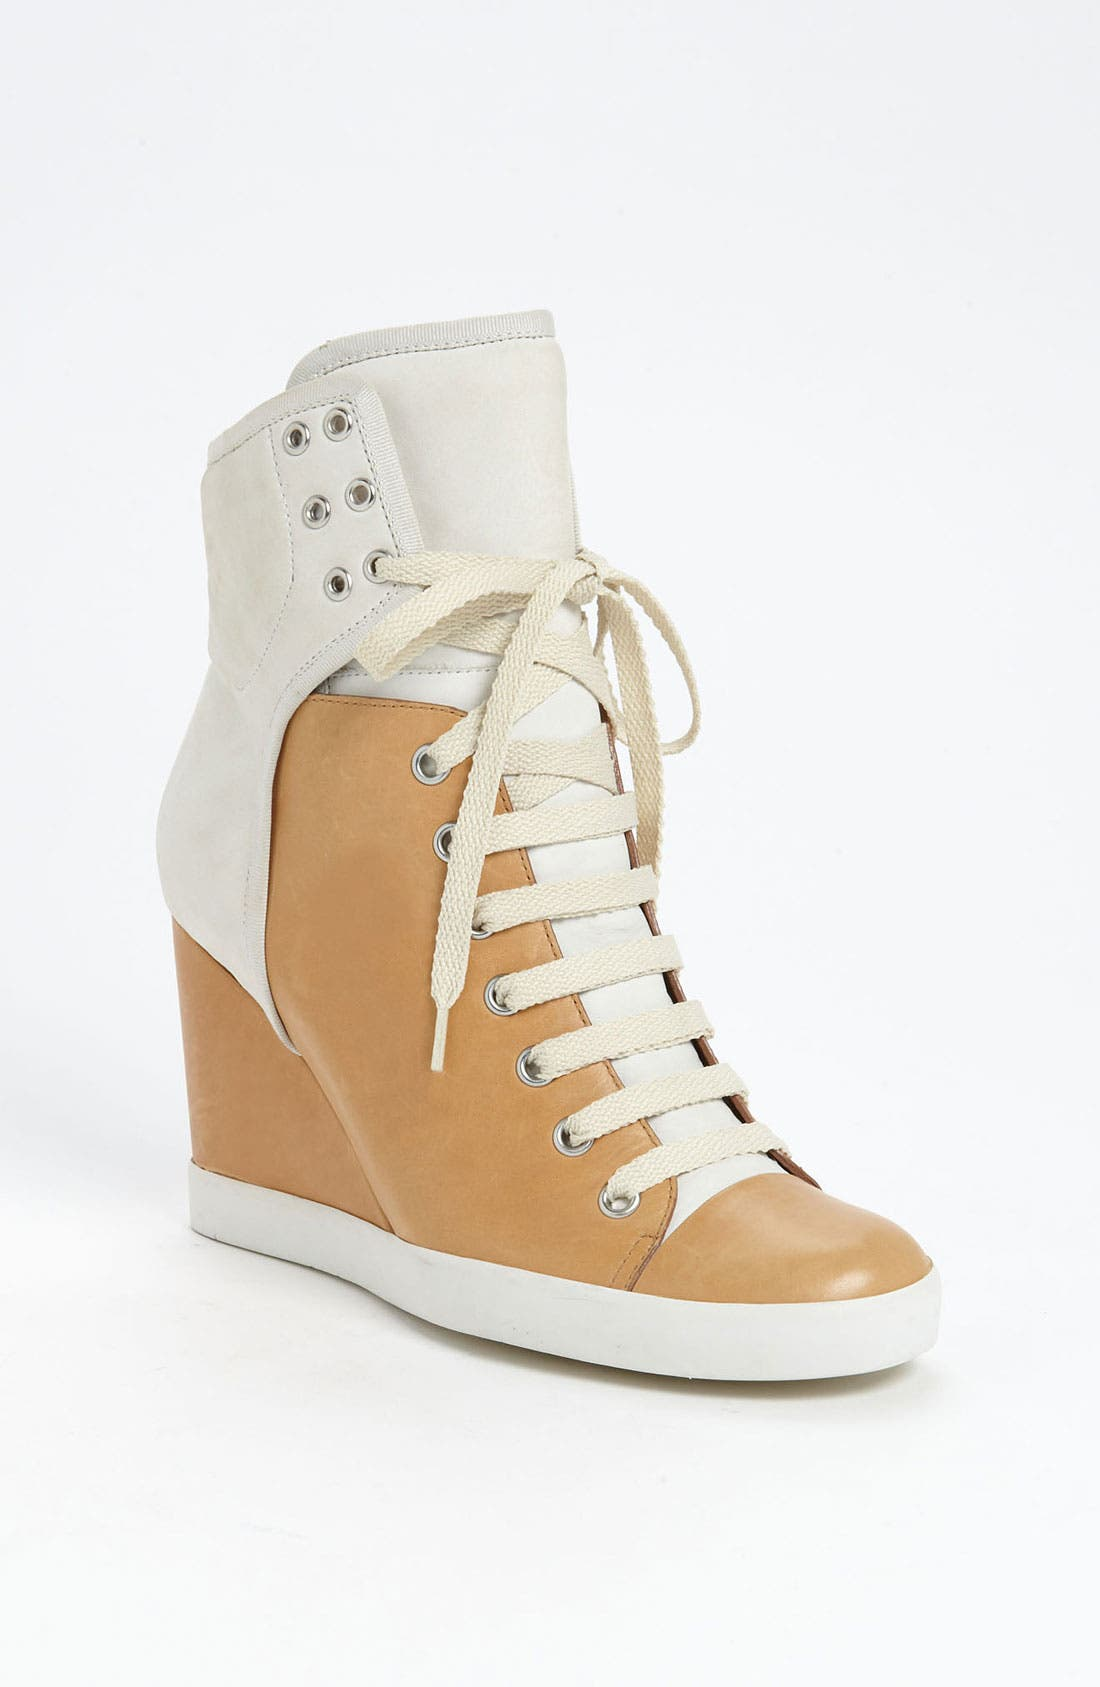 Alternate Image 1 Selected - See by Chloé High Top Wedge Sneaker